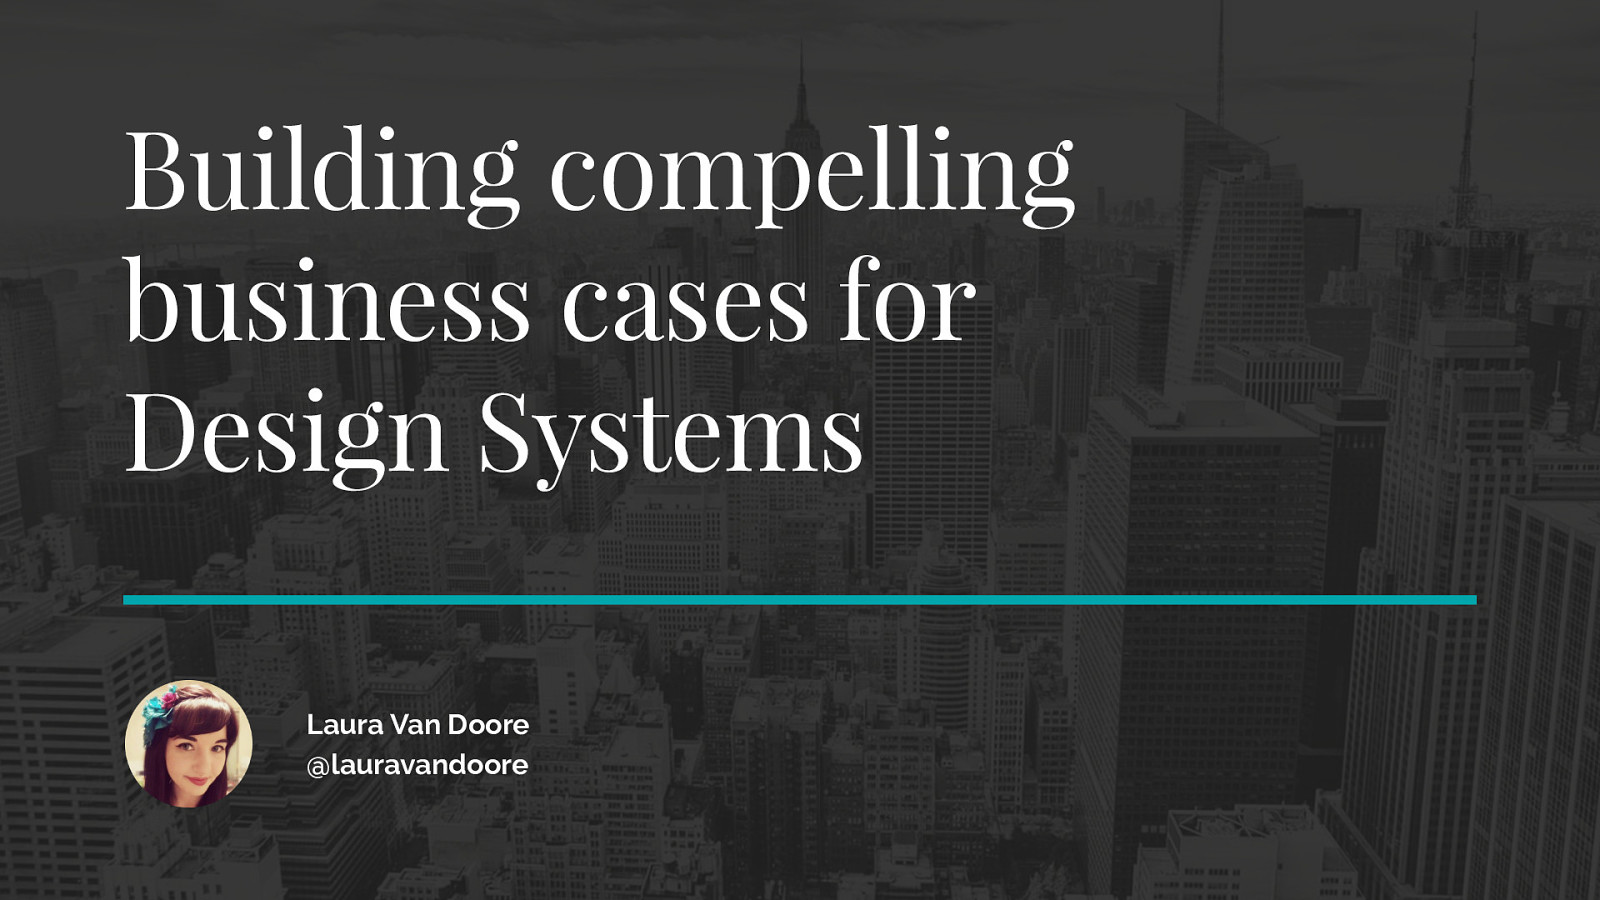 Building compelling business cases for Design Systems